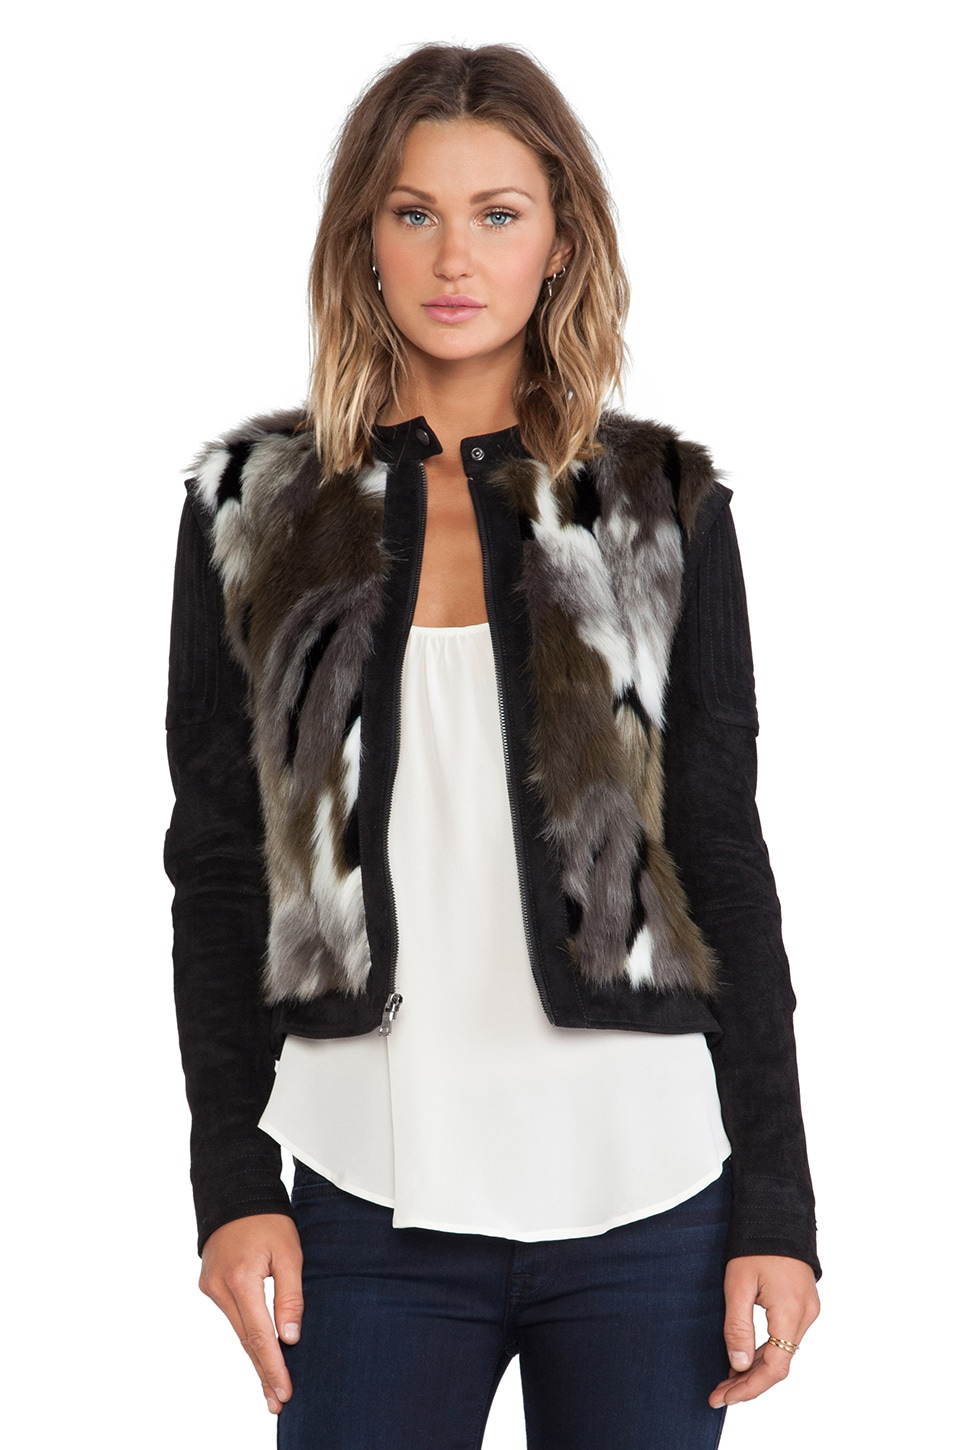 BCBGMAXAZRIA Faux Fur Dimitri Jacket in Dark Fatigue Combo